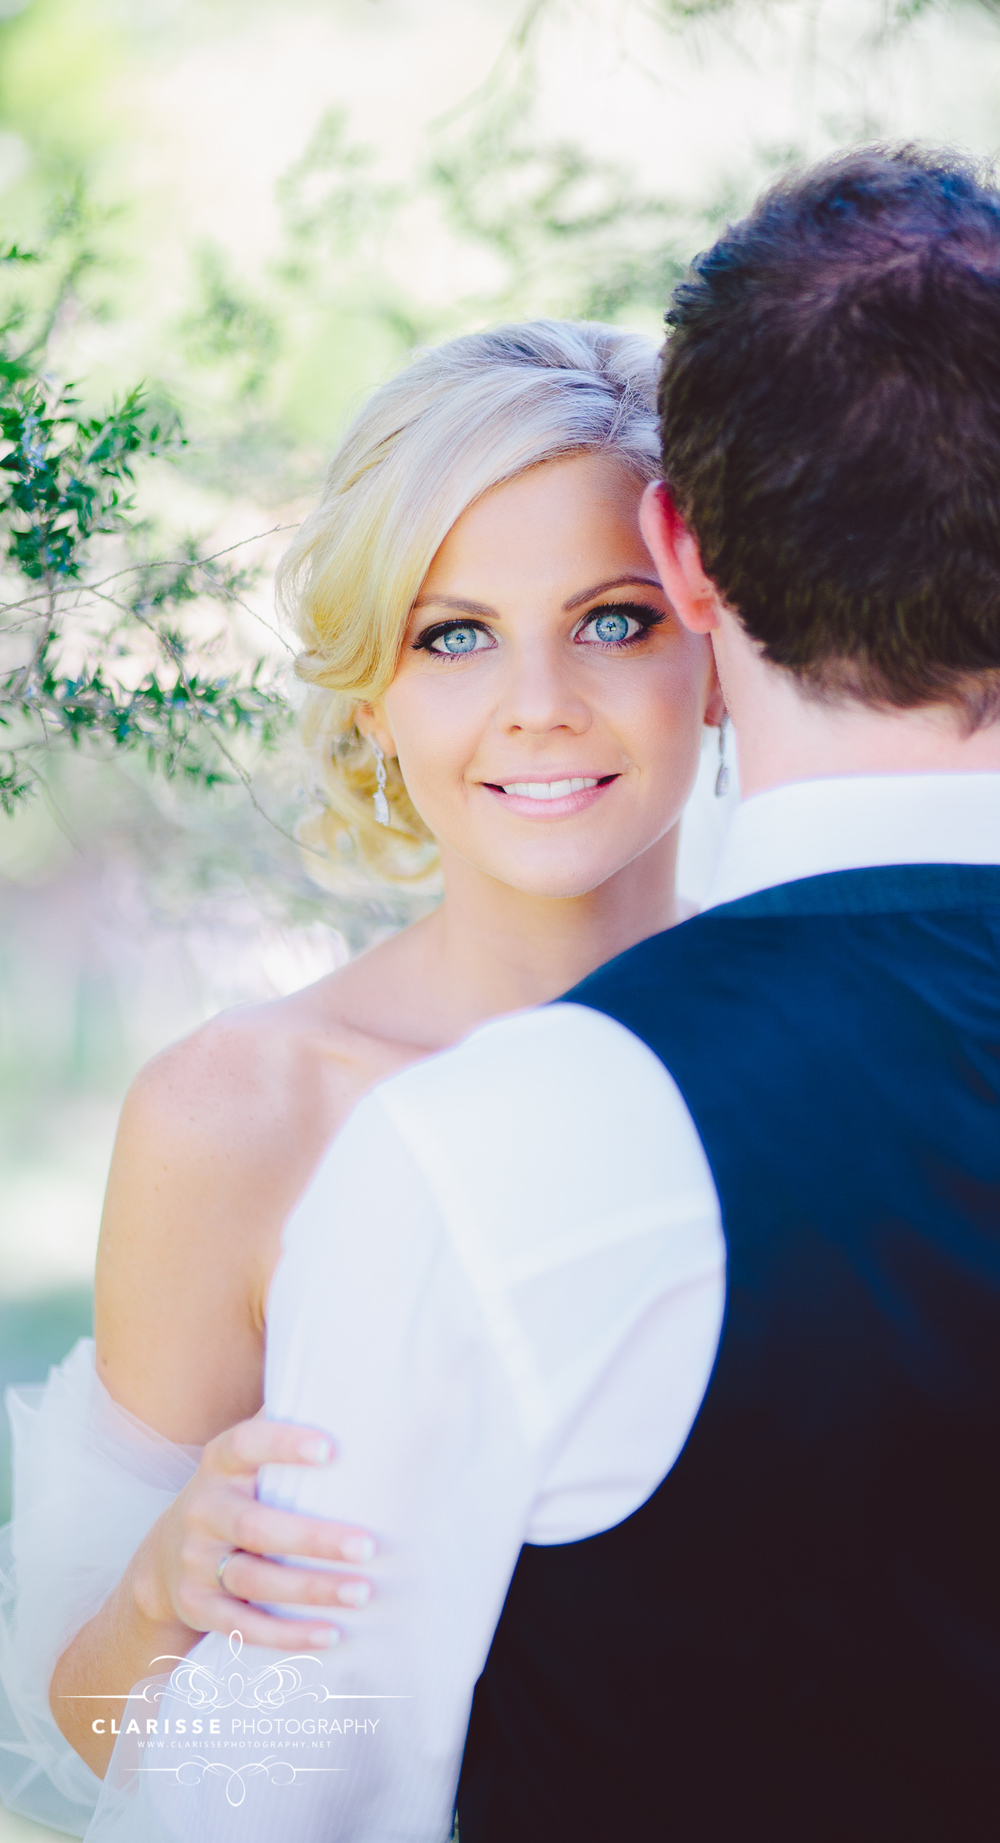 Beautiful-blue-eyed-bride-melbourne-botanical-gardens-in-summer-wedding-day-kirsty.jpeg